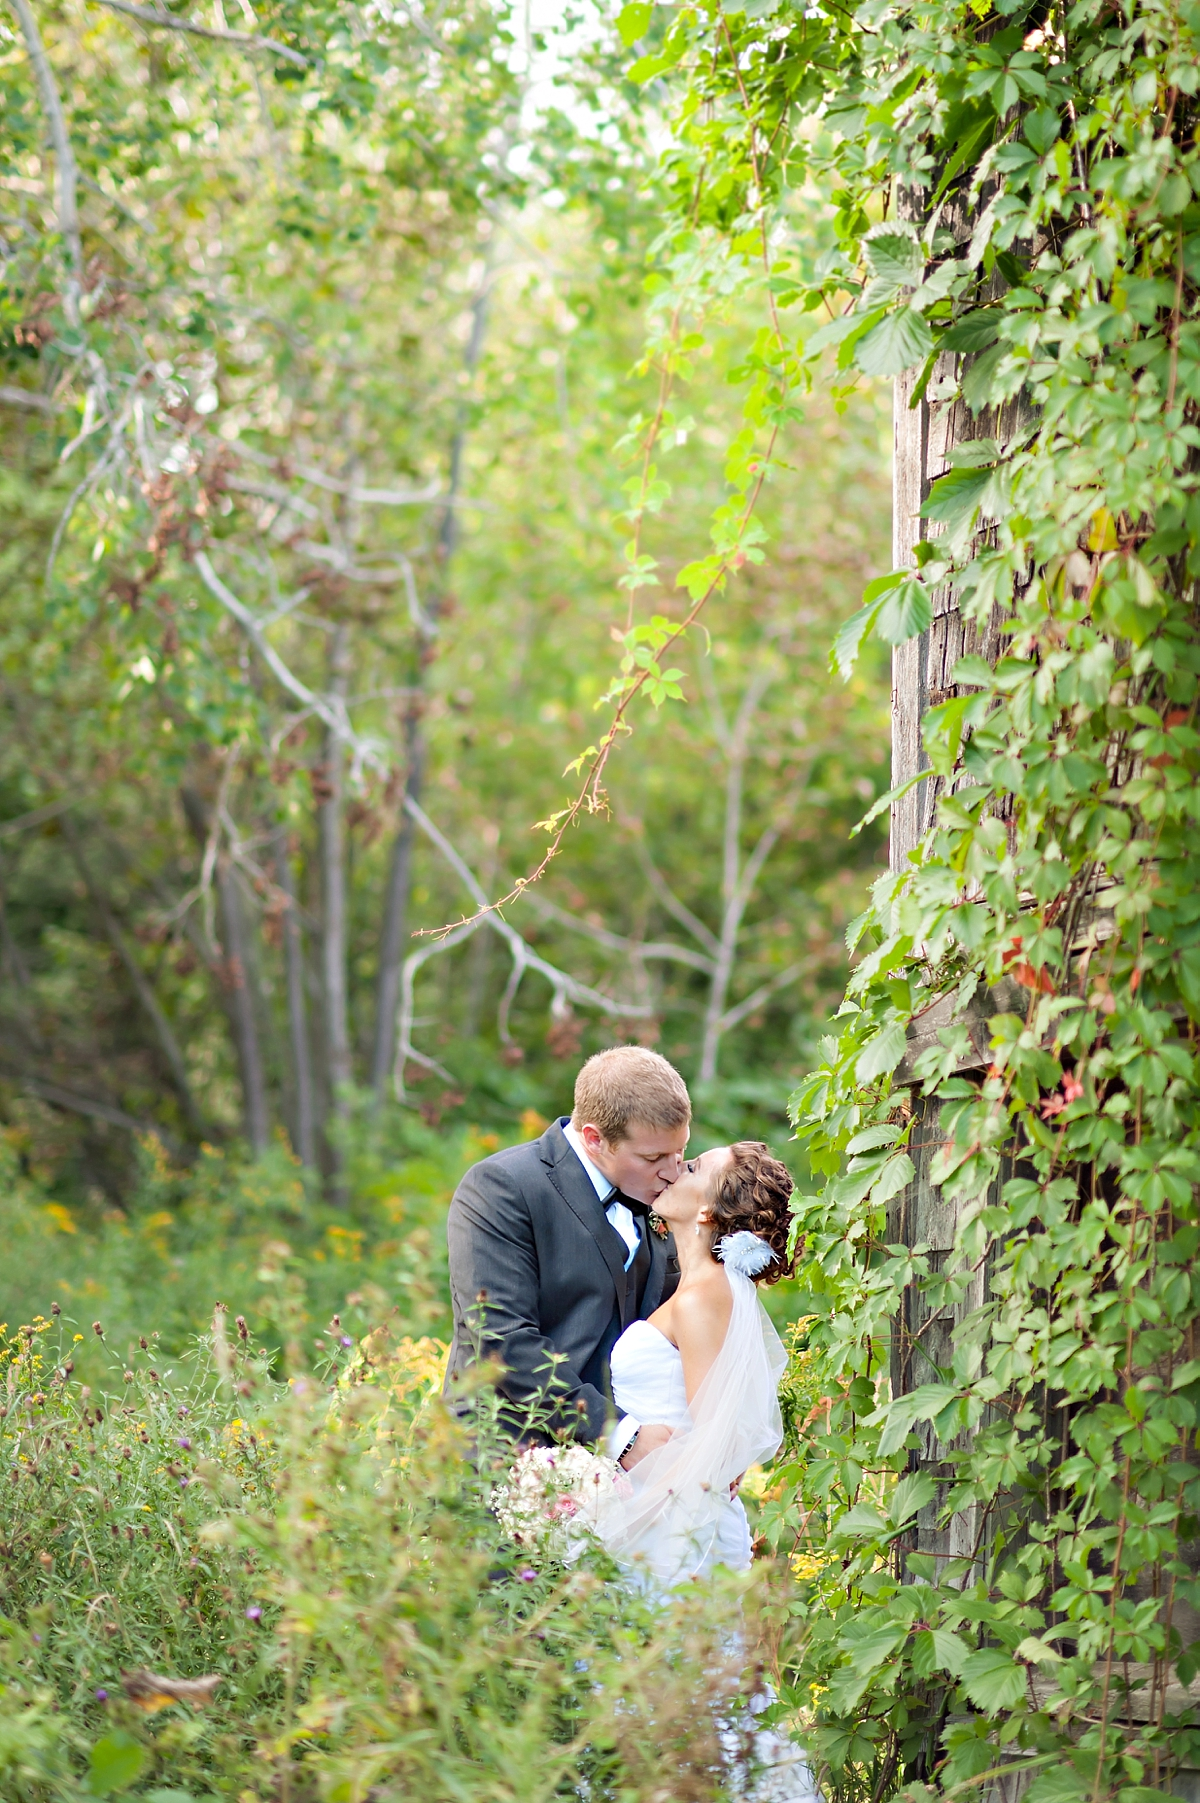 Kyla + Mark  |  Candace Berry Photography100